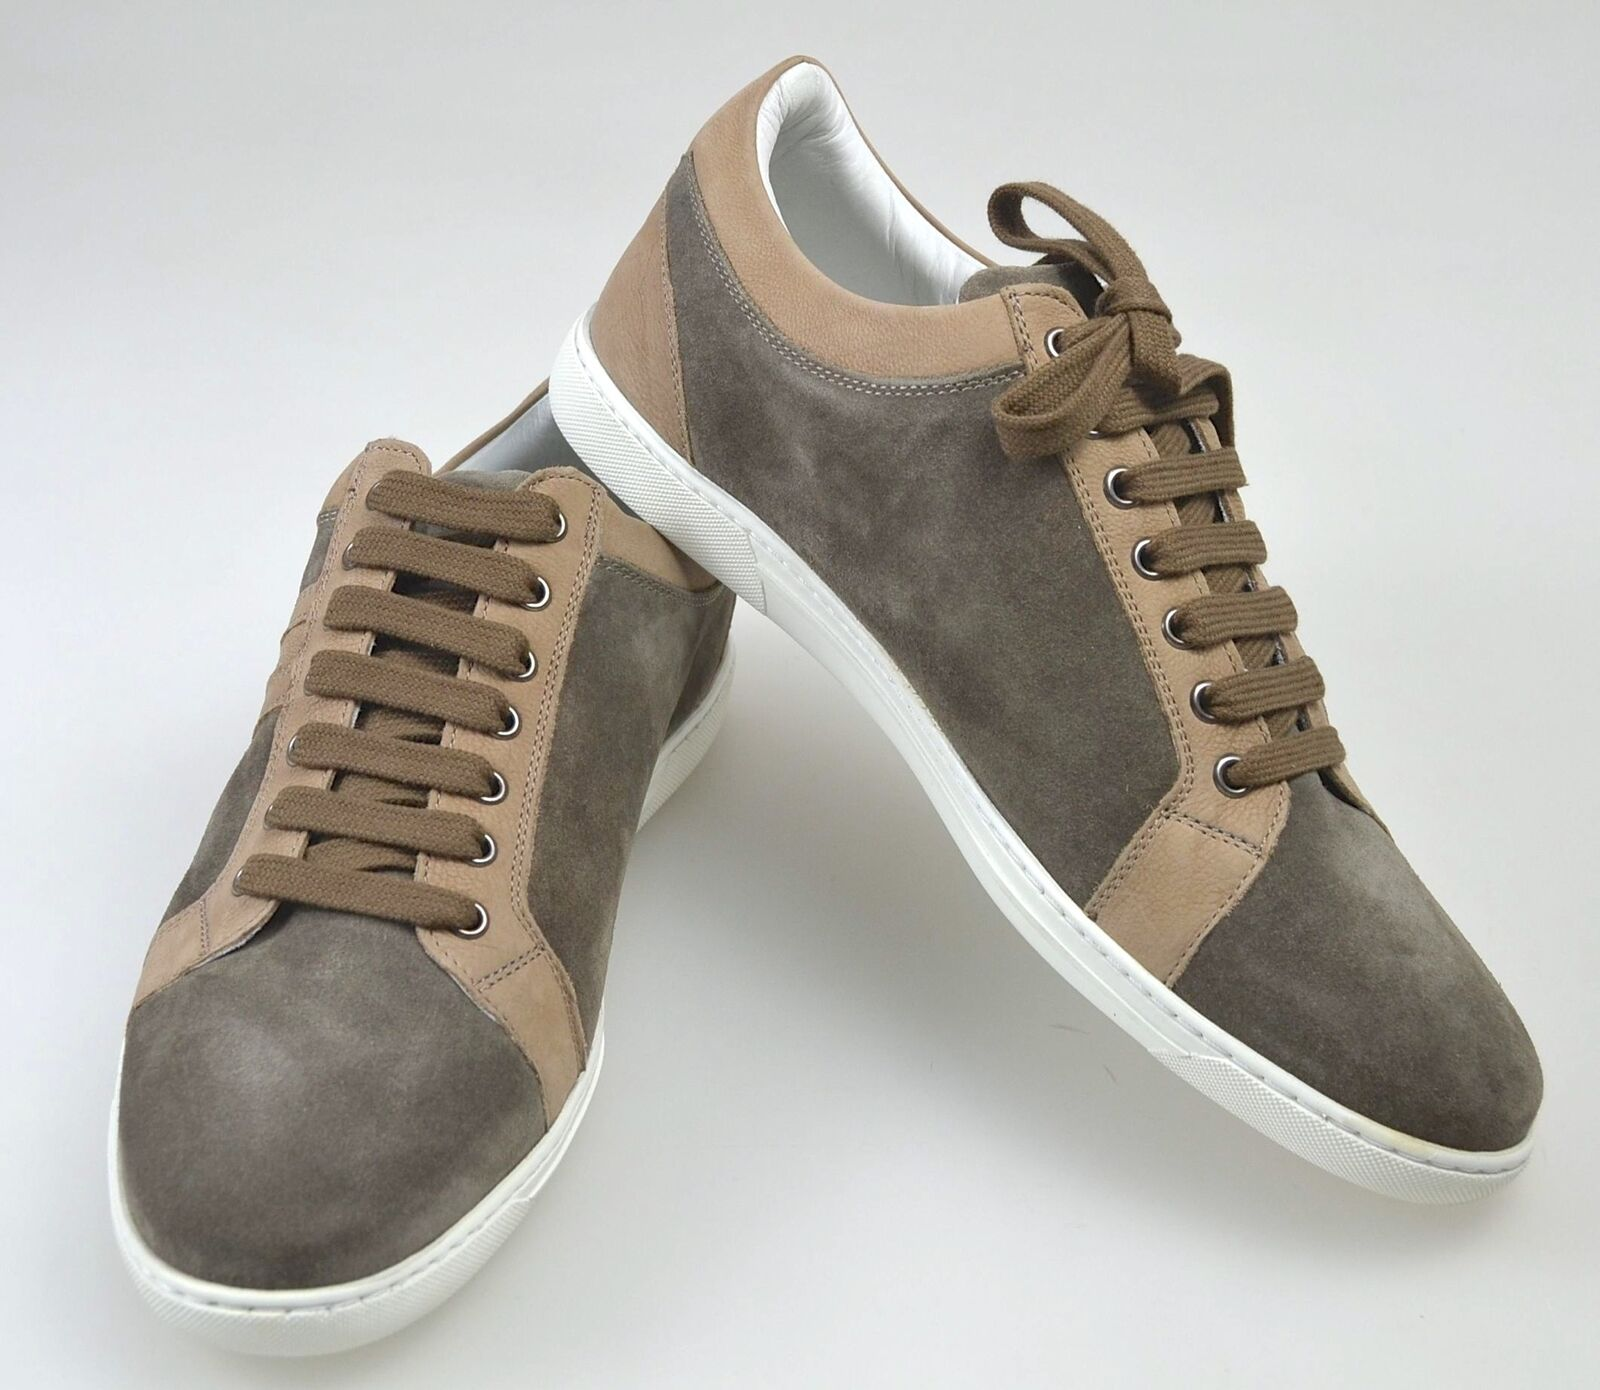 GIVENCHY MAN SNEAKER SHOES CASUAL FREE TIME LEATHER SUEDE CODE G3073C00.502